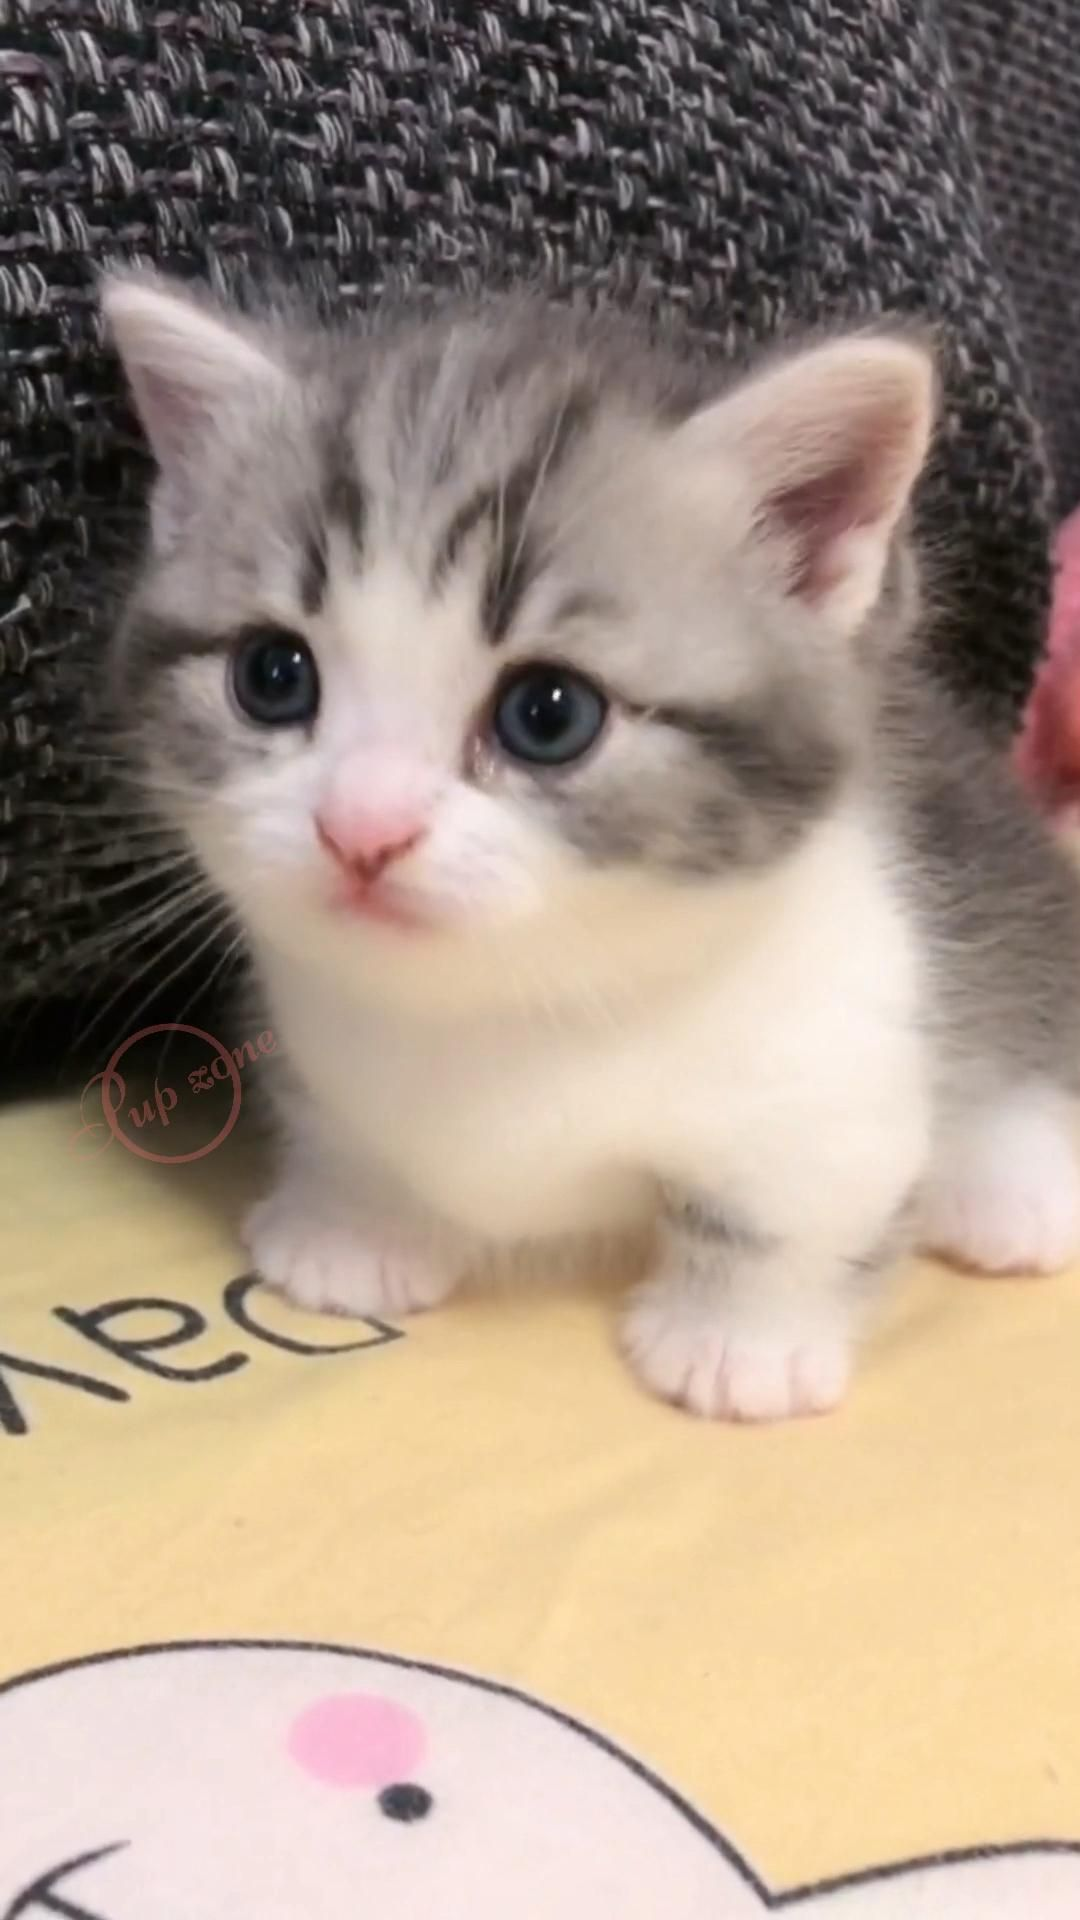 Cute Kitty Meowing Youtube Video In 2020 Cute Animals Kittens Cutest Funny Animal Videos